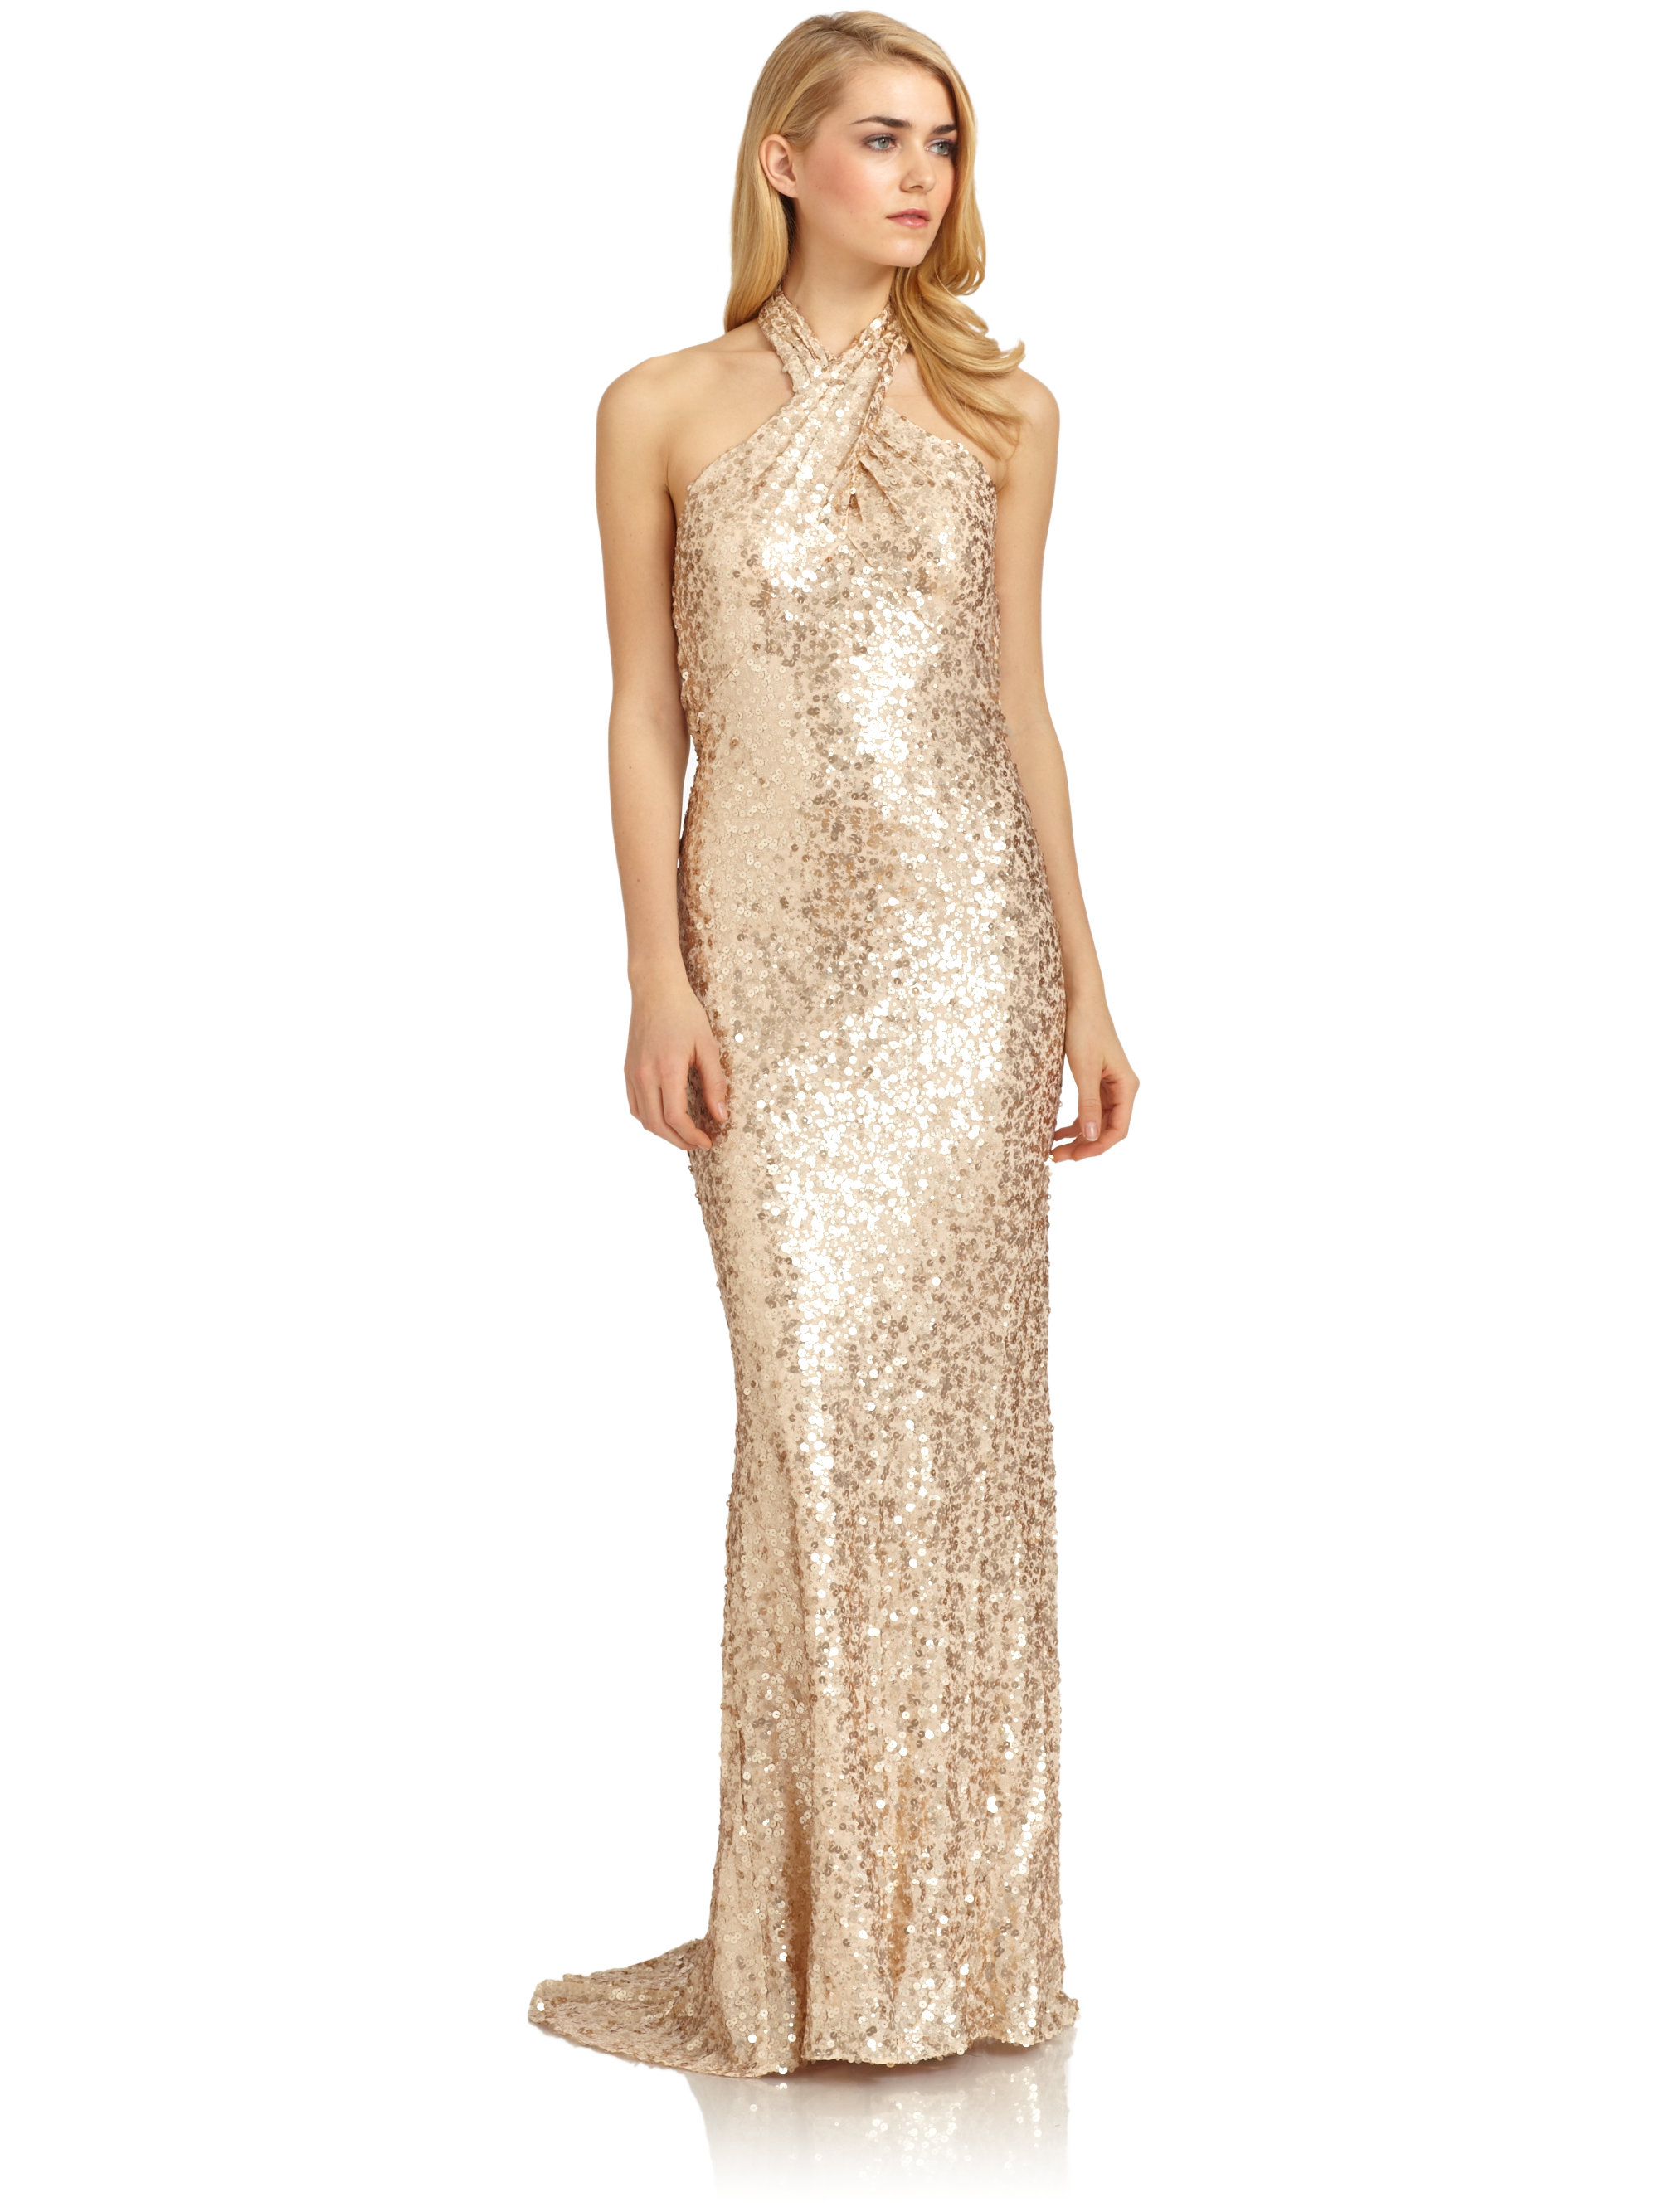 Wedding Gold Gown gold gown dressed up girl sequin gown